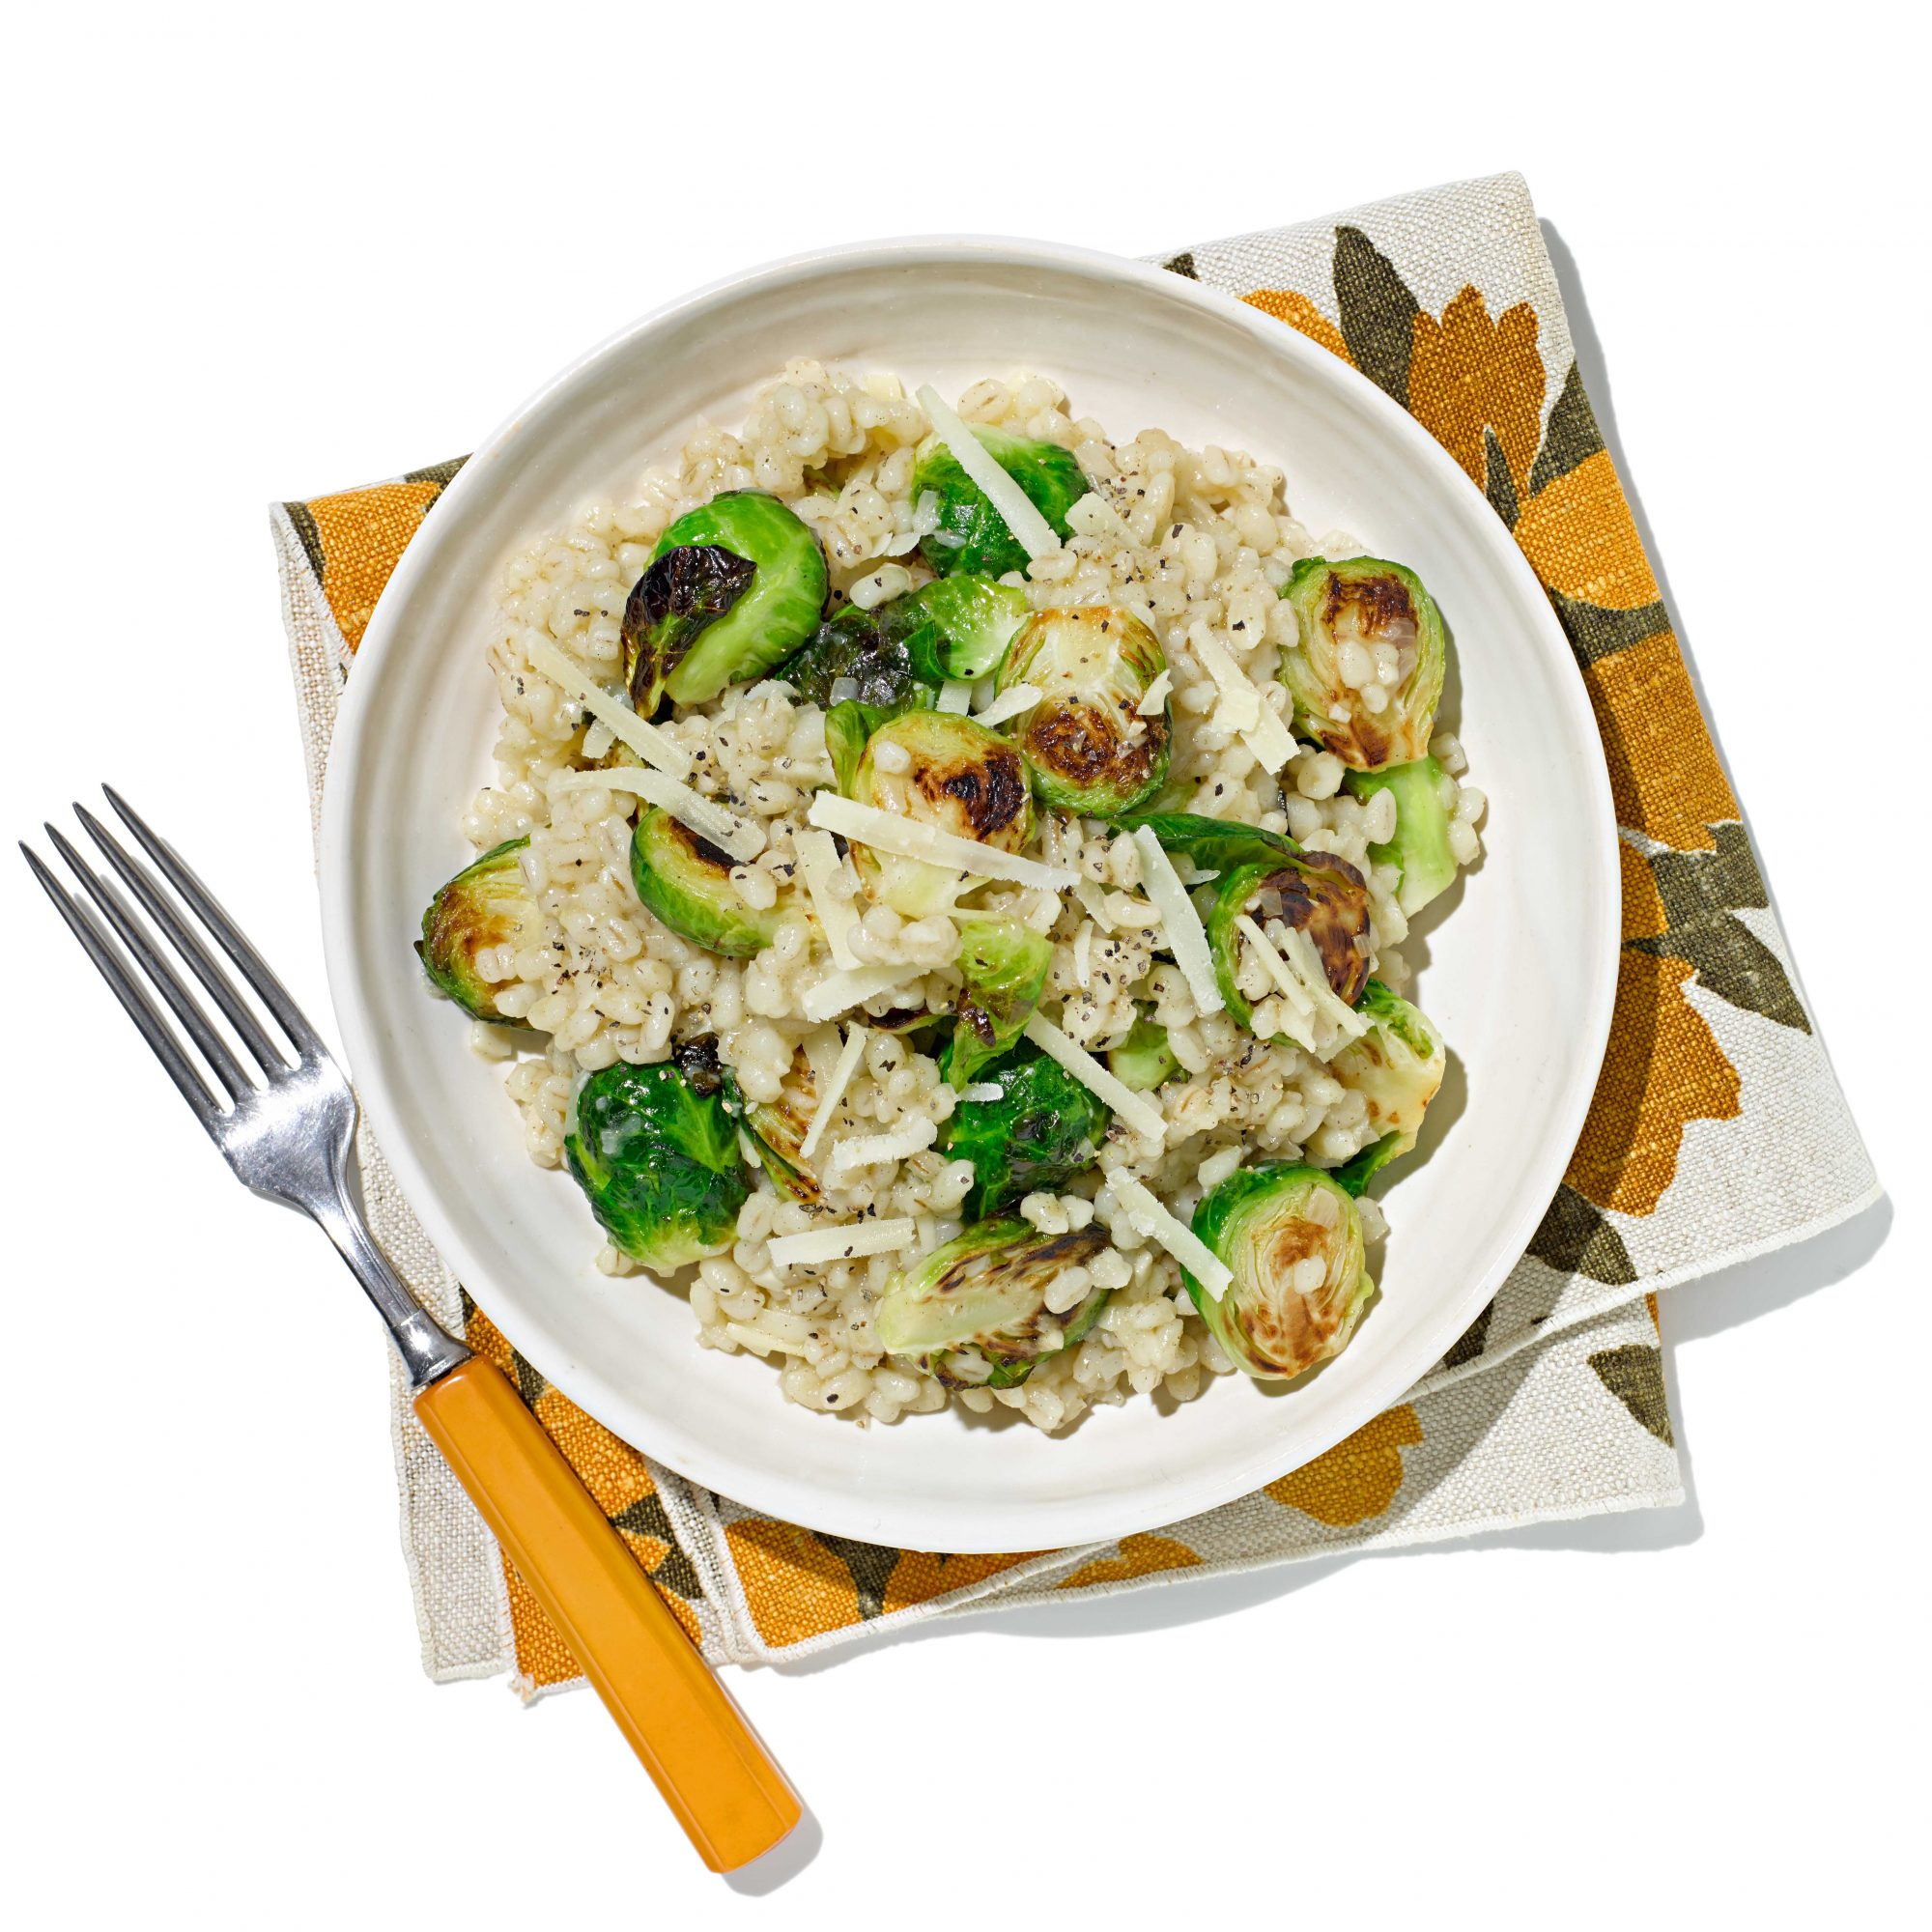 Barley & Brussels Sprouts Risotto